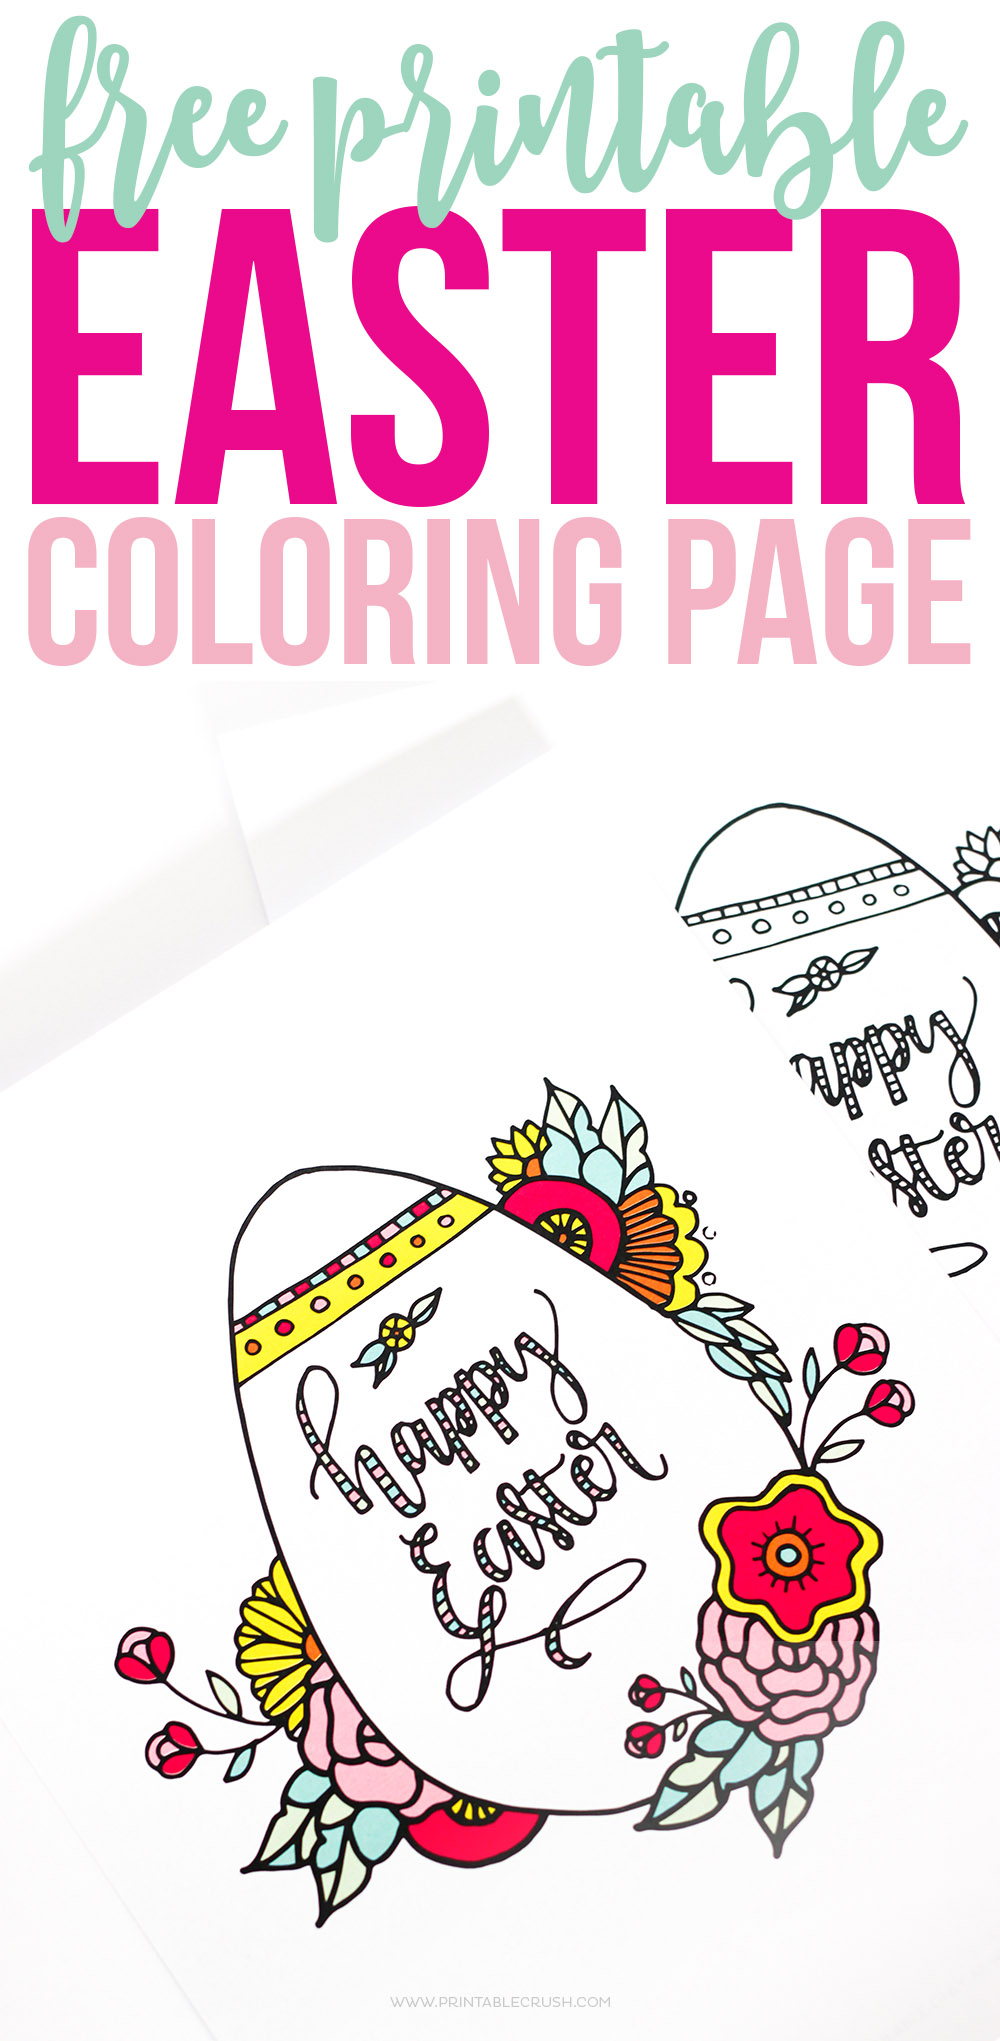 Colored and uncolored Easter coloring pages